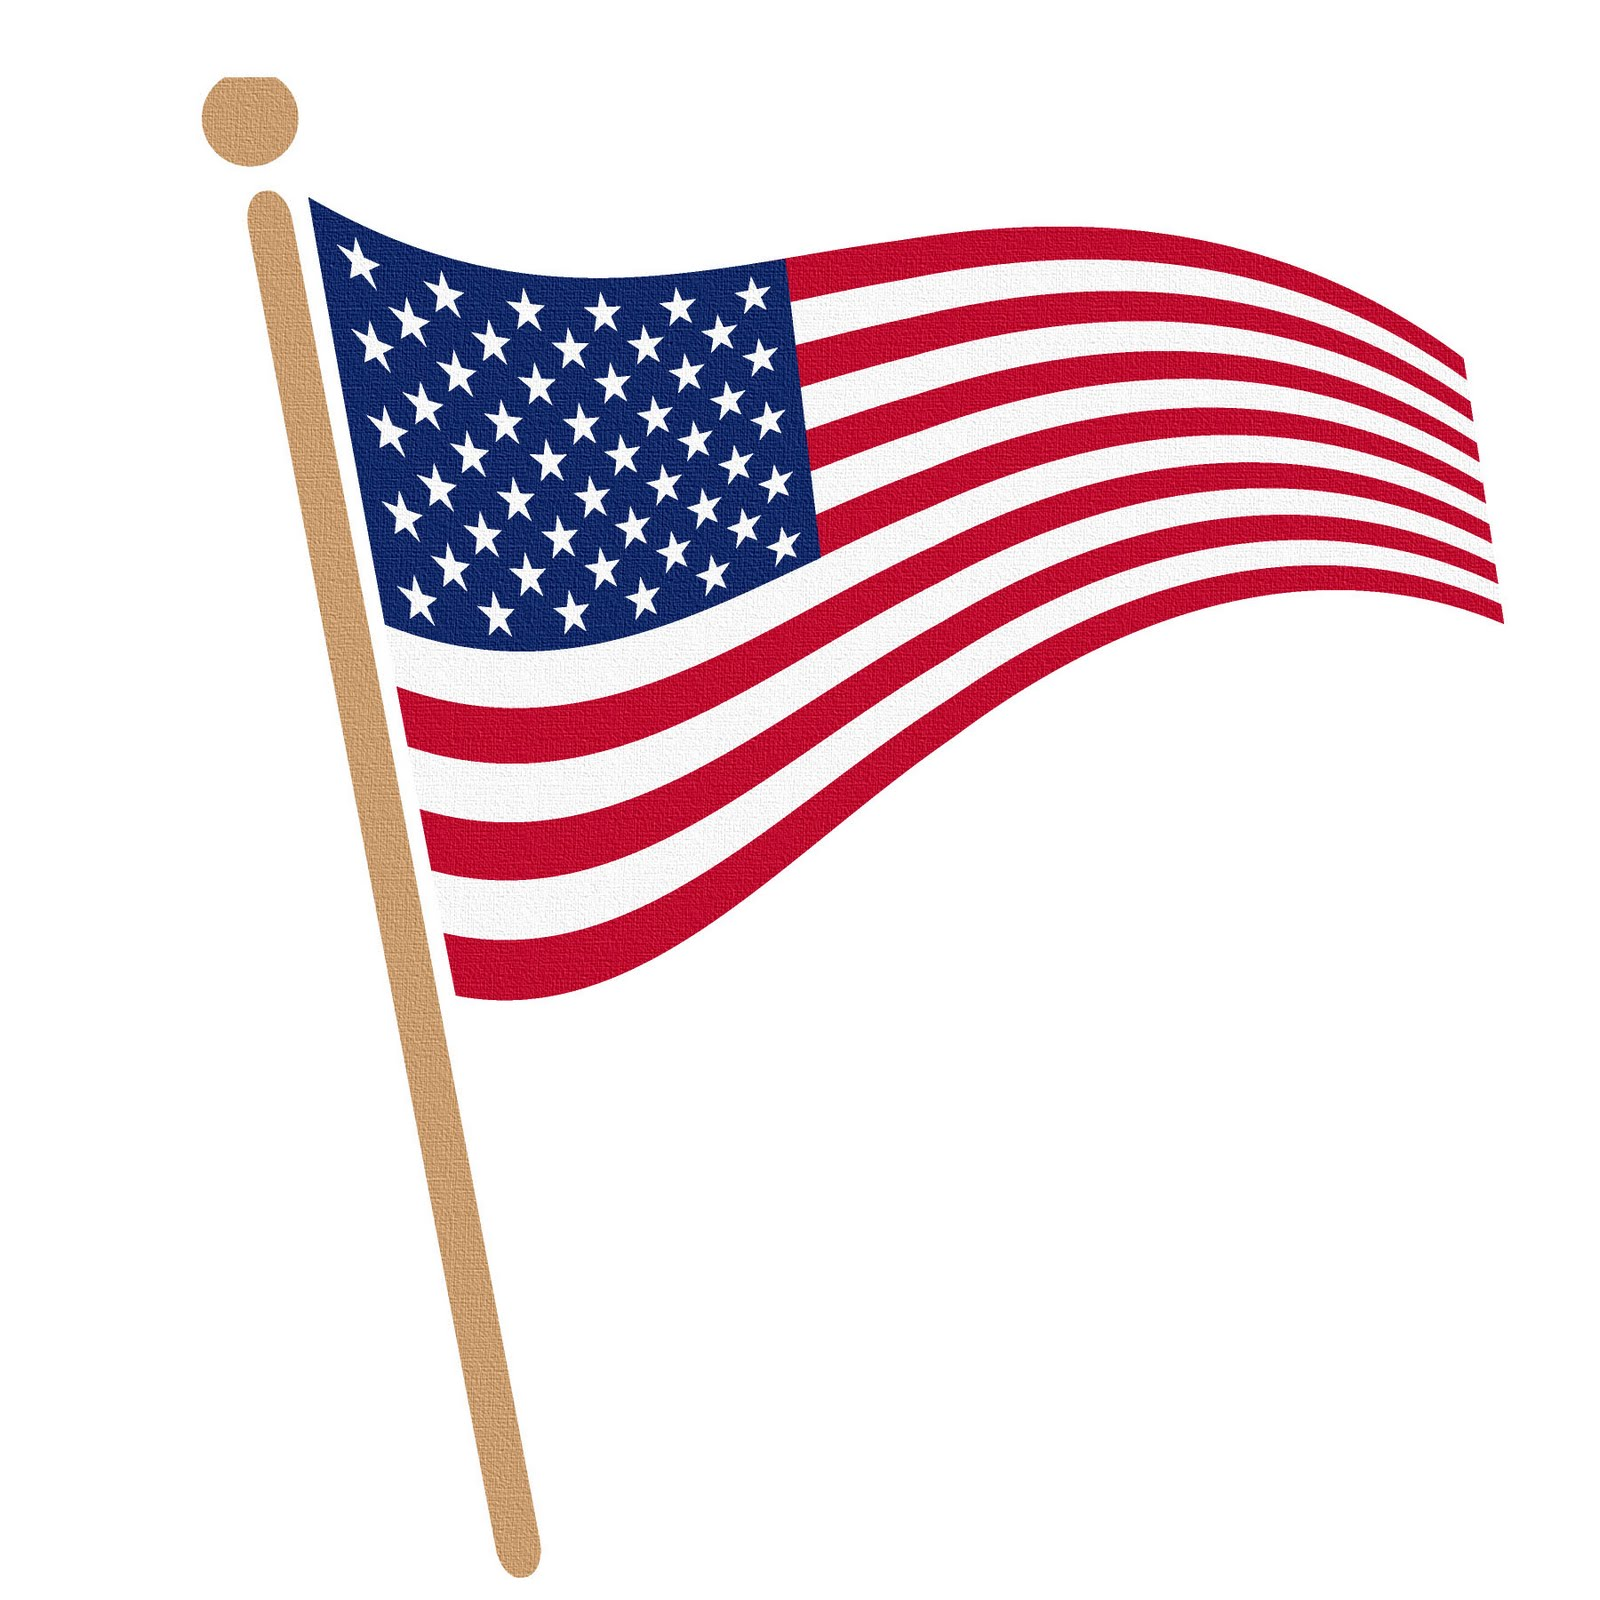 1600x1600 American Flag Clip Art To Download 4